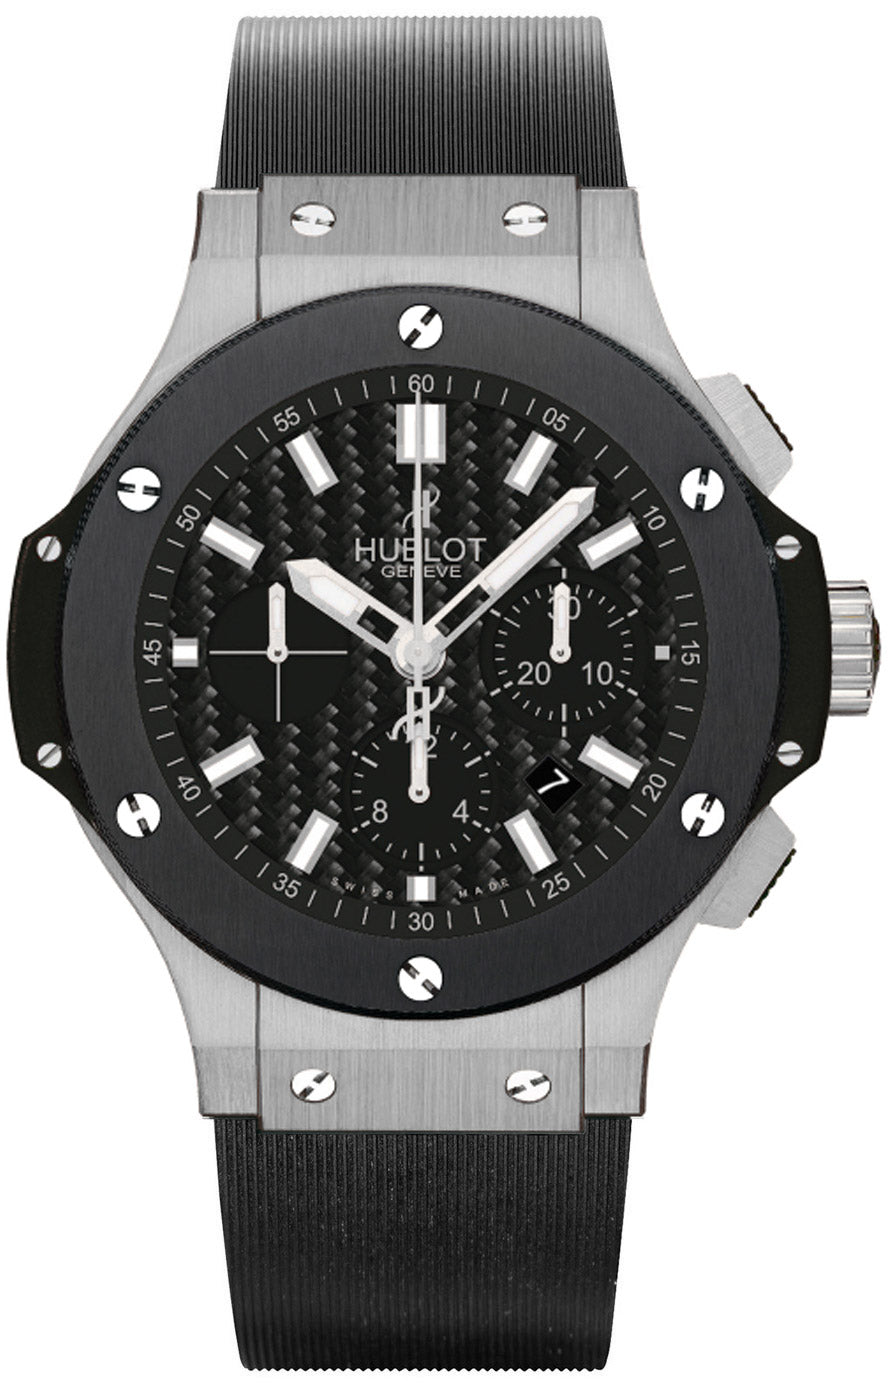 HUBLOT BIG BANG 44 MM REF. 301.SM.1770.RX (4418687959153)